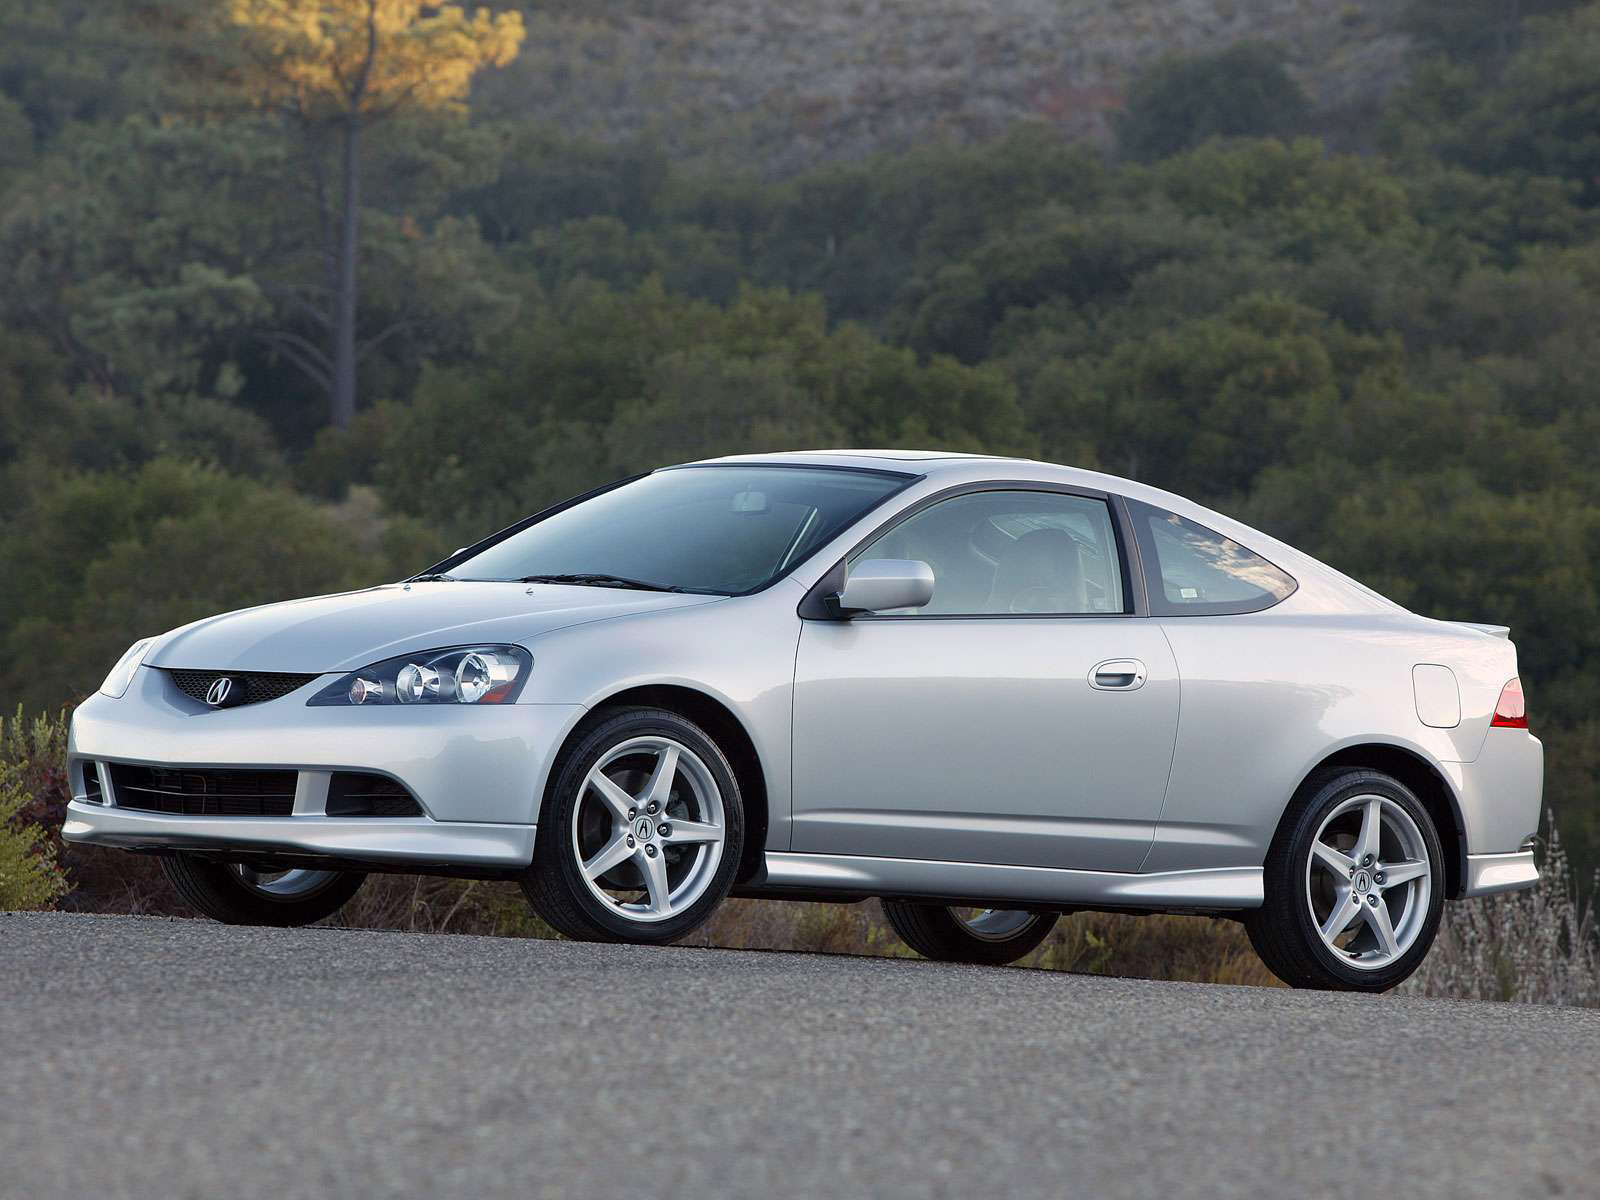 2005 Acura RSX Type-S photo - 2